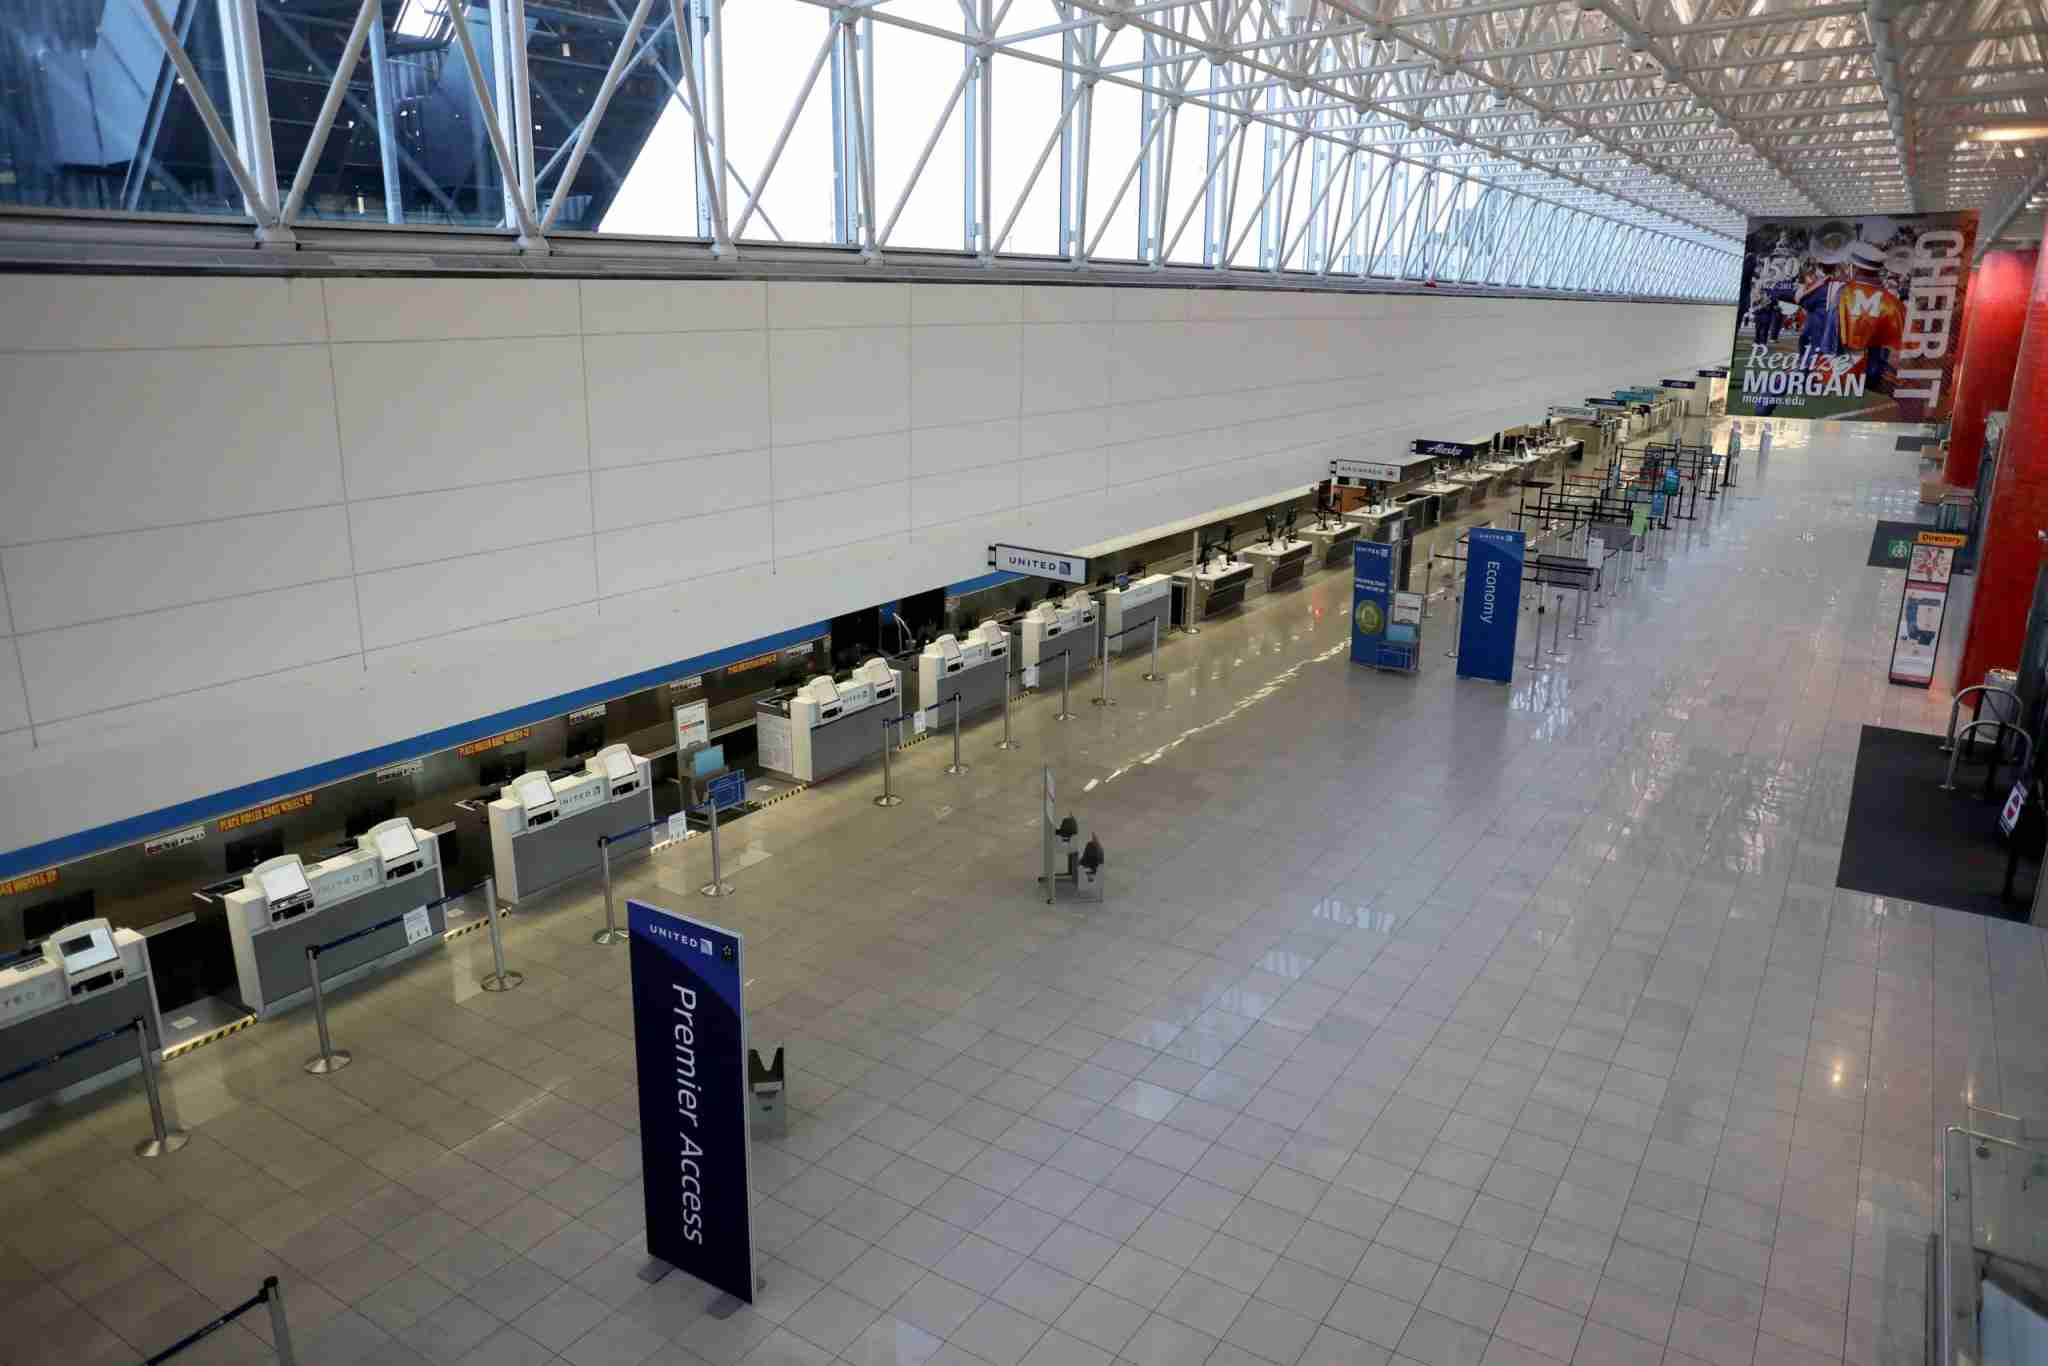 LINTHICUM HEIGHTS, MARYLAND - APRIL 20: A general view of the vacant United Airlines terminal at Baltimore/Washington International Thurgood Marshall Airport during mid-day on April 20, 2020 in Linthicum Heights, Maryland. The airline industry has been hit hard by the COVID-19 pandemic, forcing the cancellation and consolidation of flights across the globe. (Photo by Rob Carr/Getty Images)